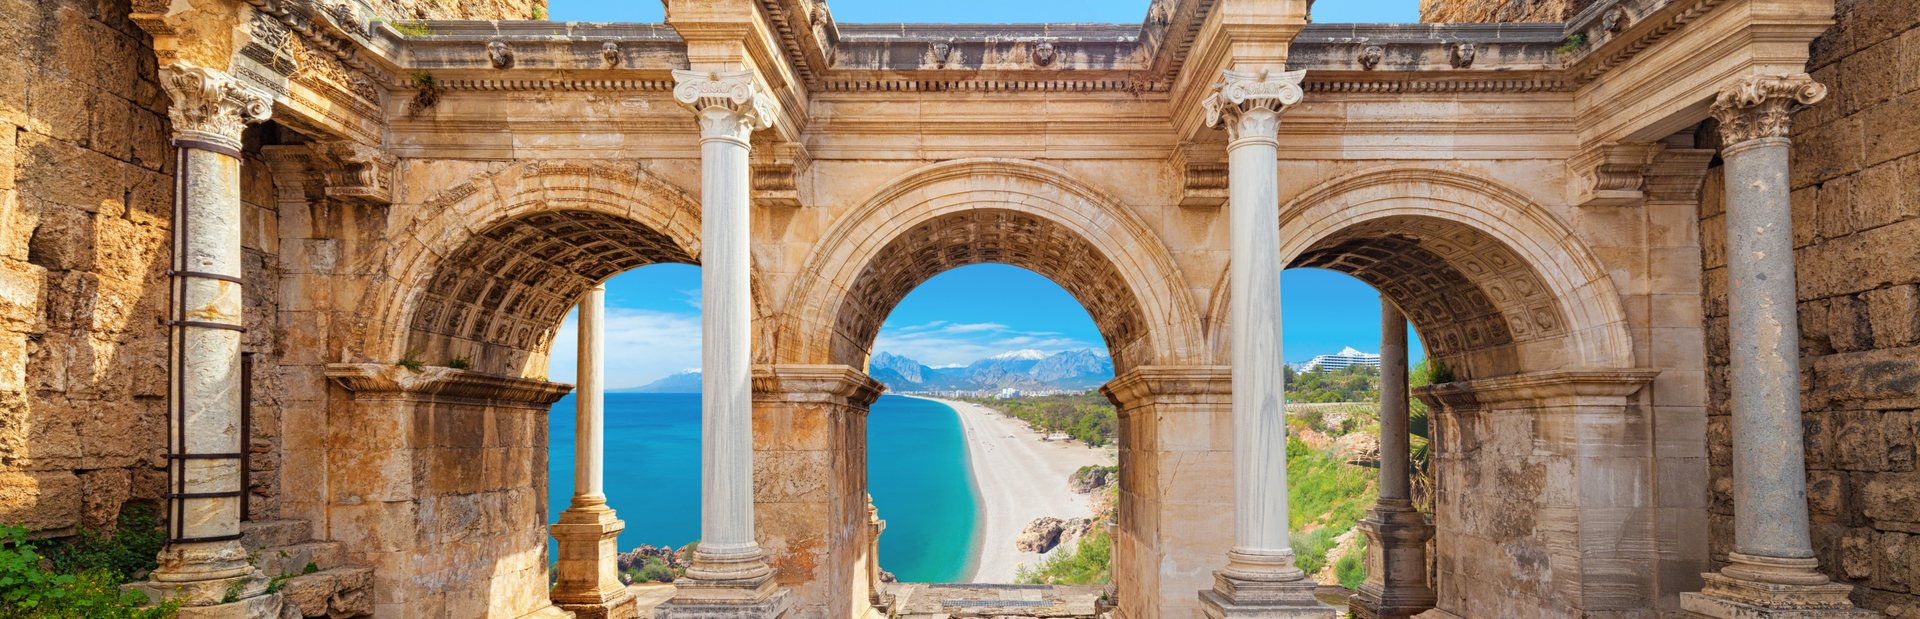 Things to see & do inTurkey